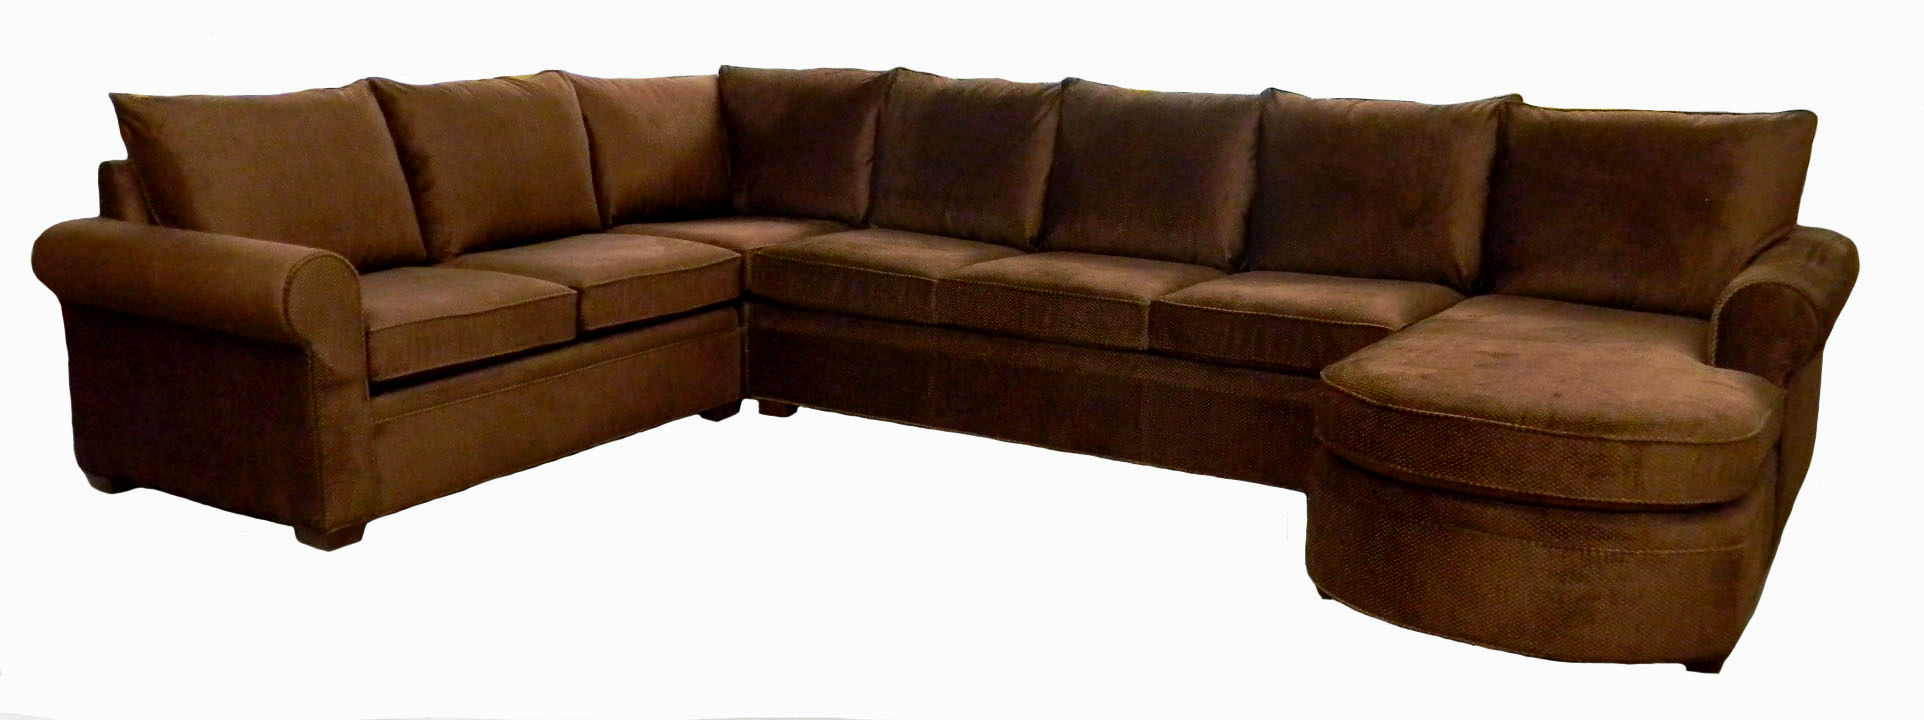 best slipcovers for sectional sofas collection-Beautiful Slipcovers for Sectional sofas Online